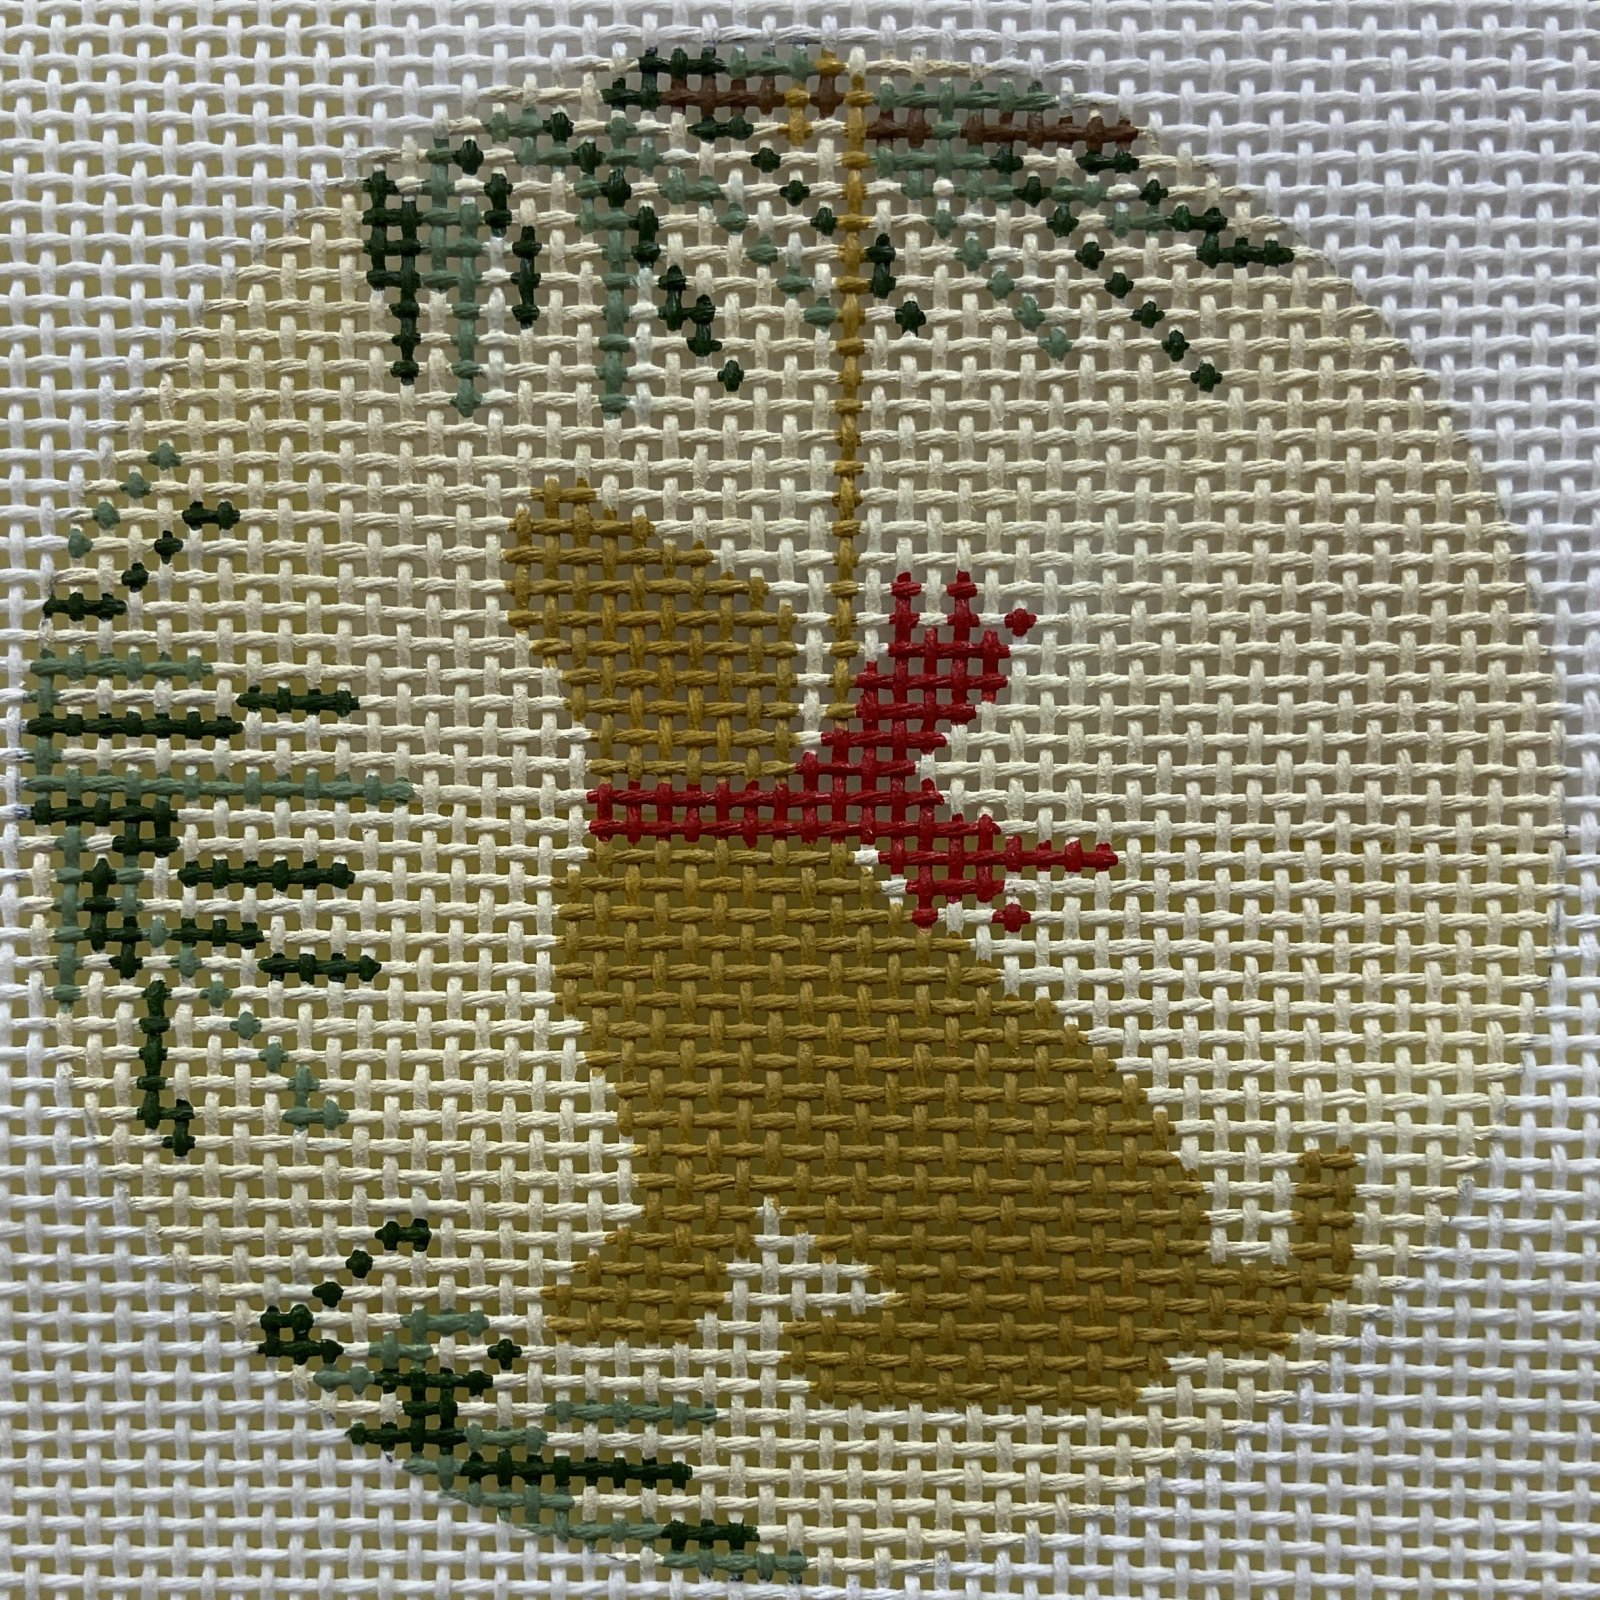 LMXO07 Yellow Lab Ornament CBK Needlepoint Collections